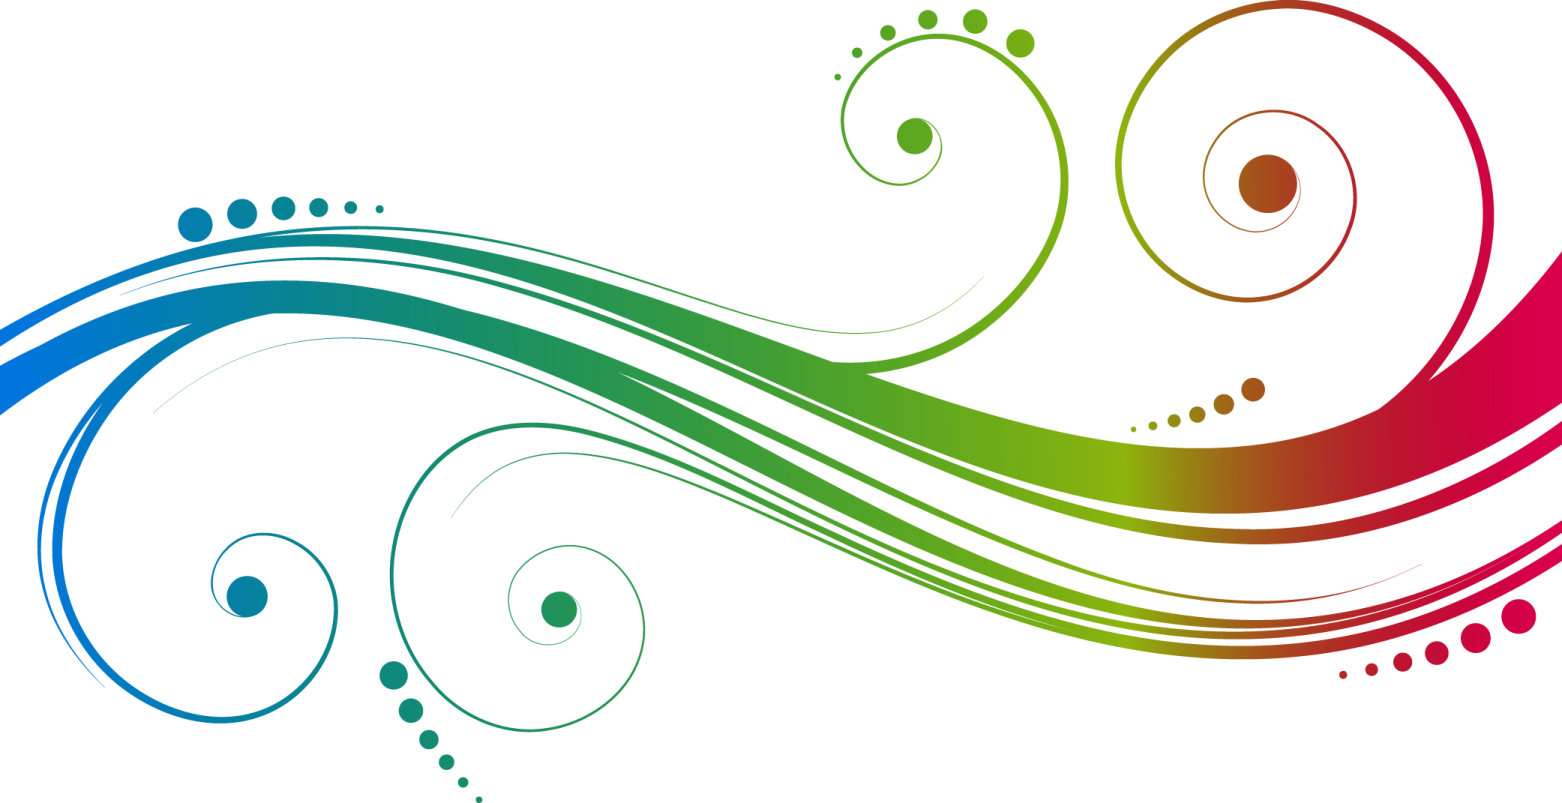 picture download Swirls PNG Images Transparent Free Download